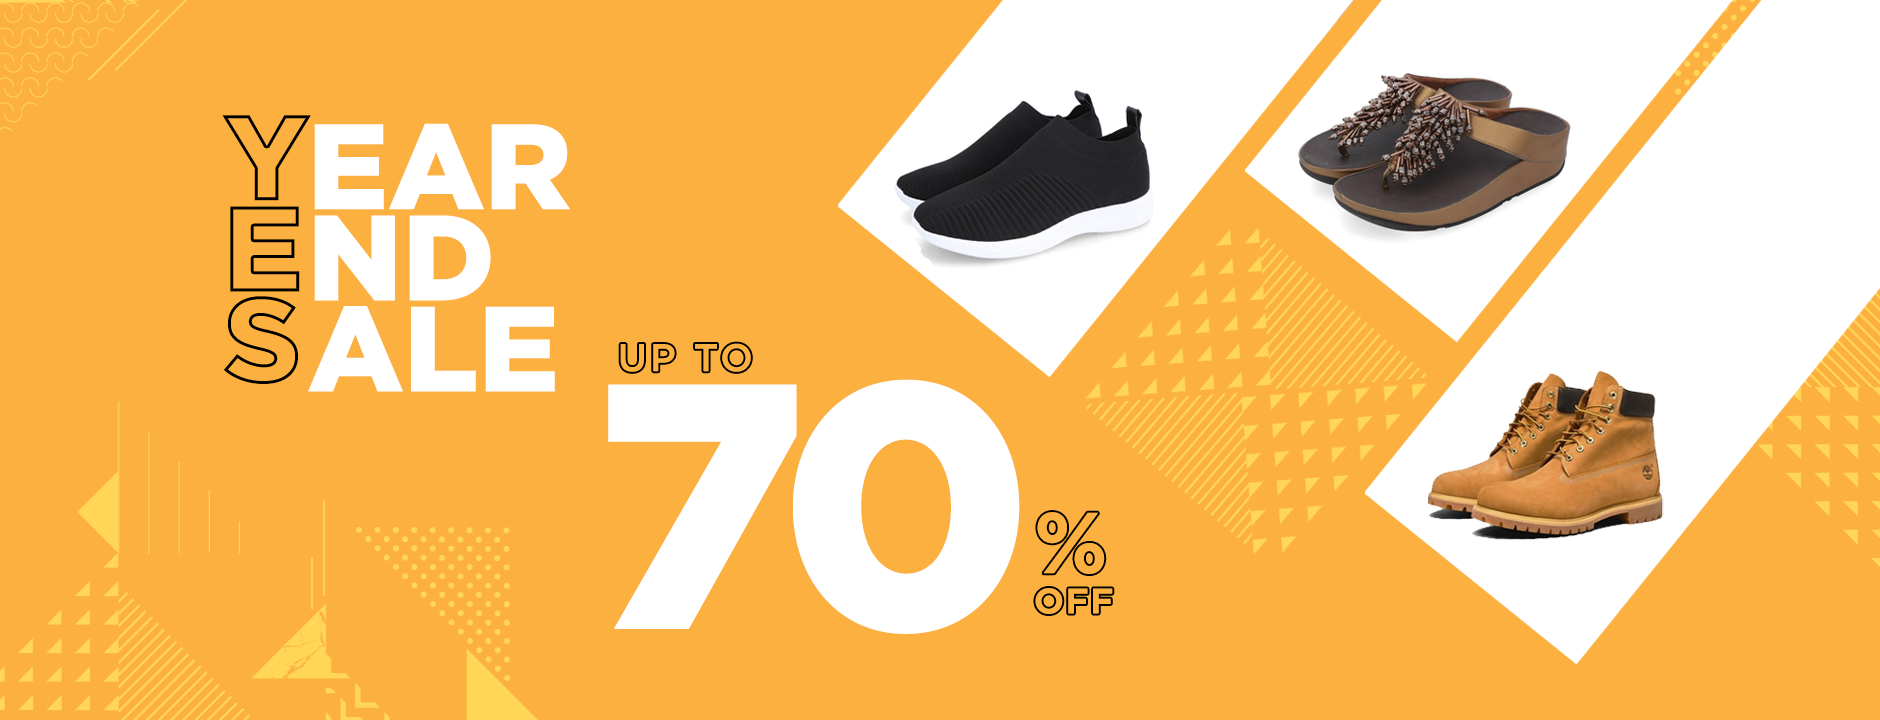 Timberland - Year End Sale